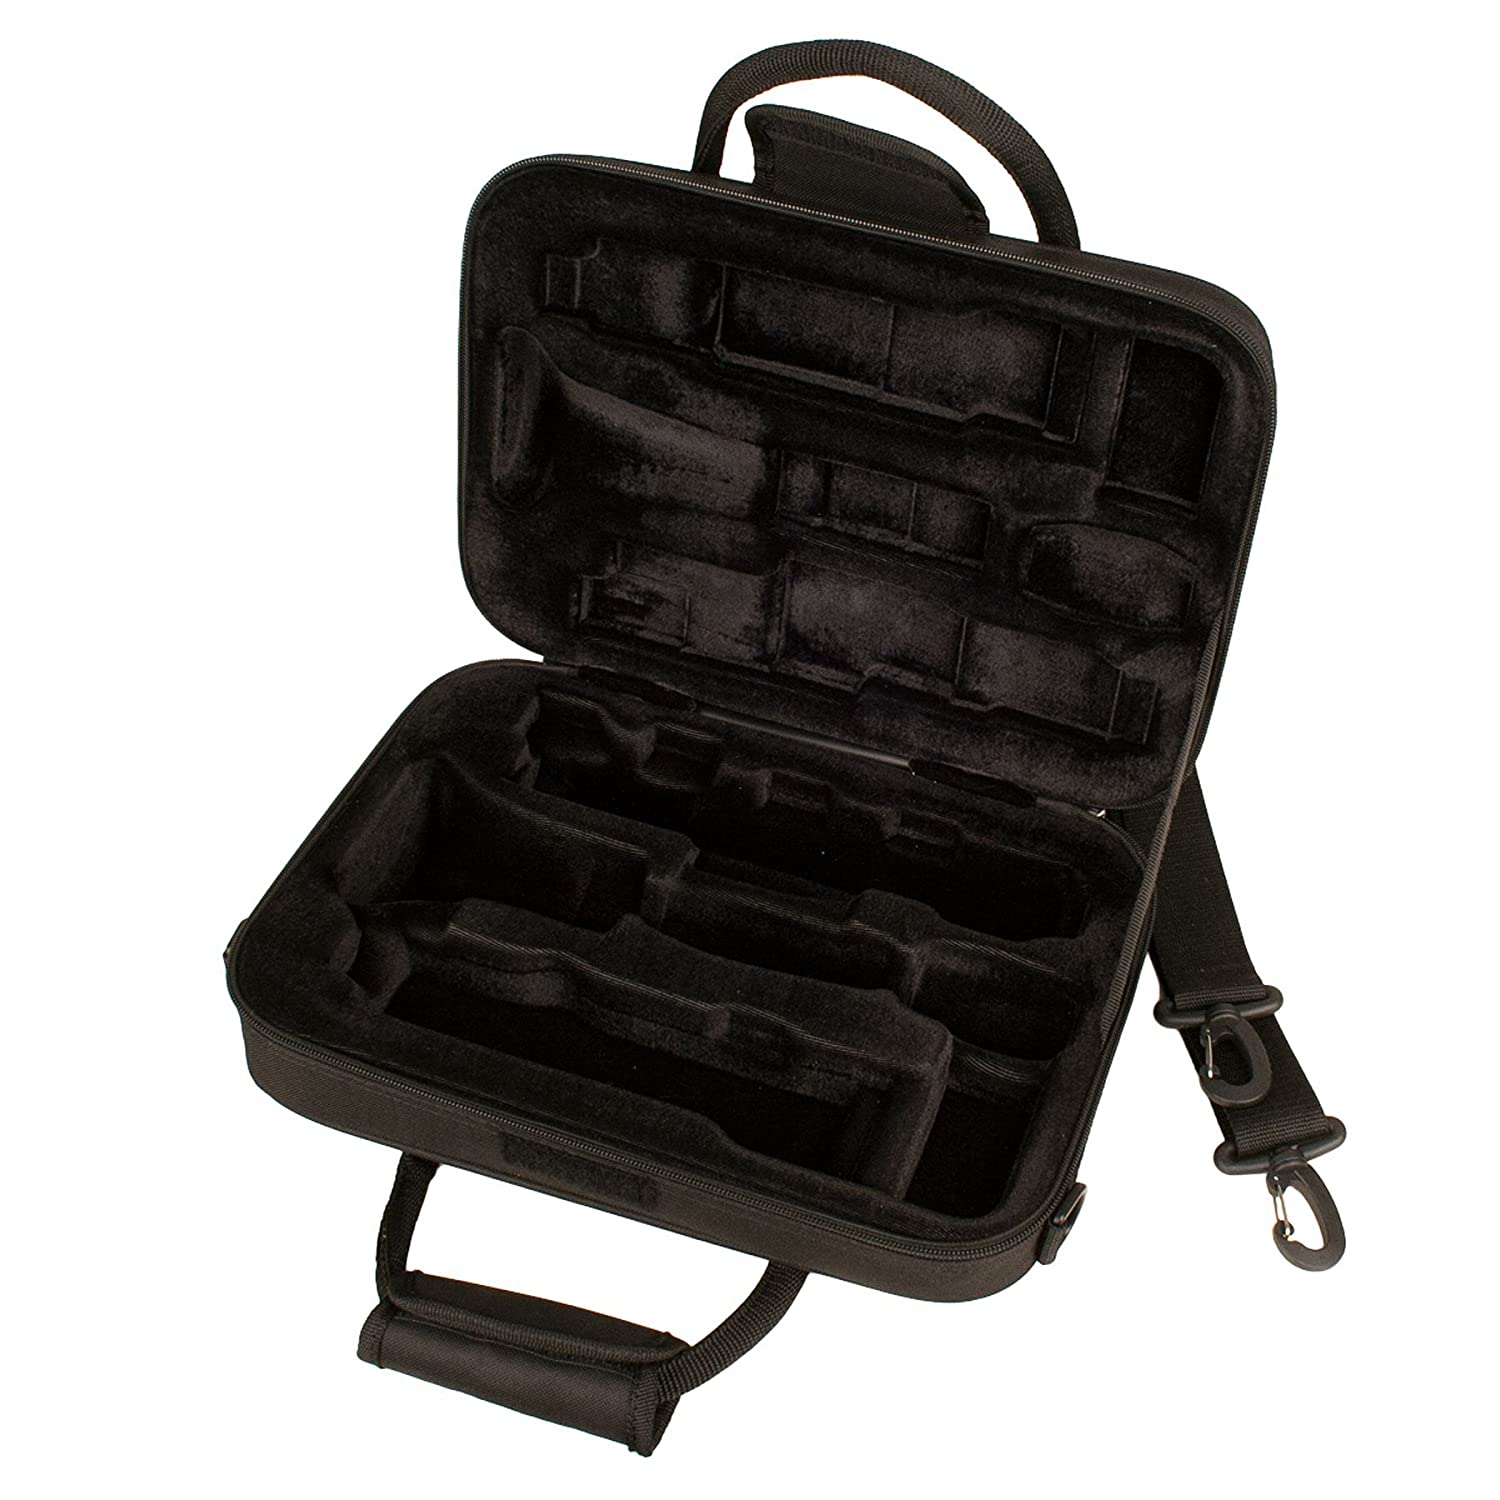 Protec Bb Clarinet MAX Case (Black), Model MX307